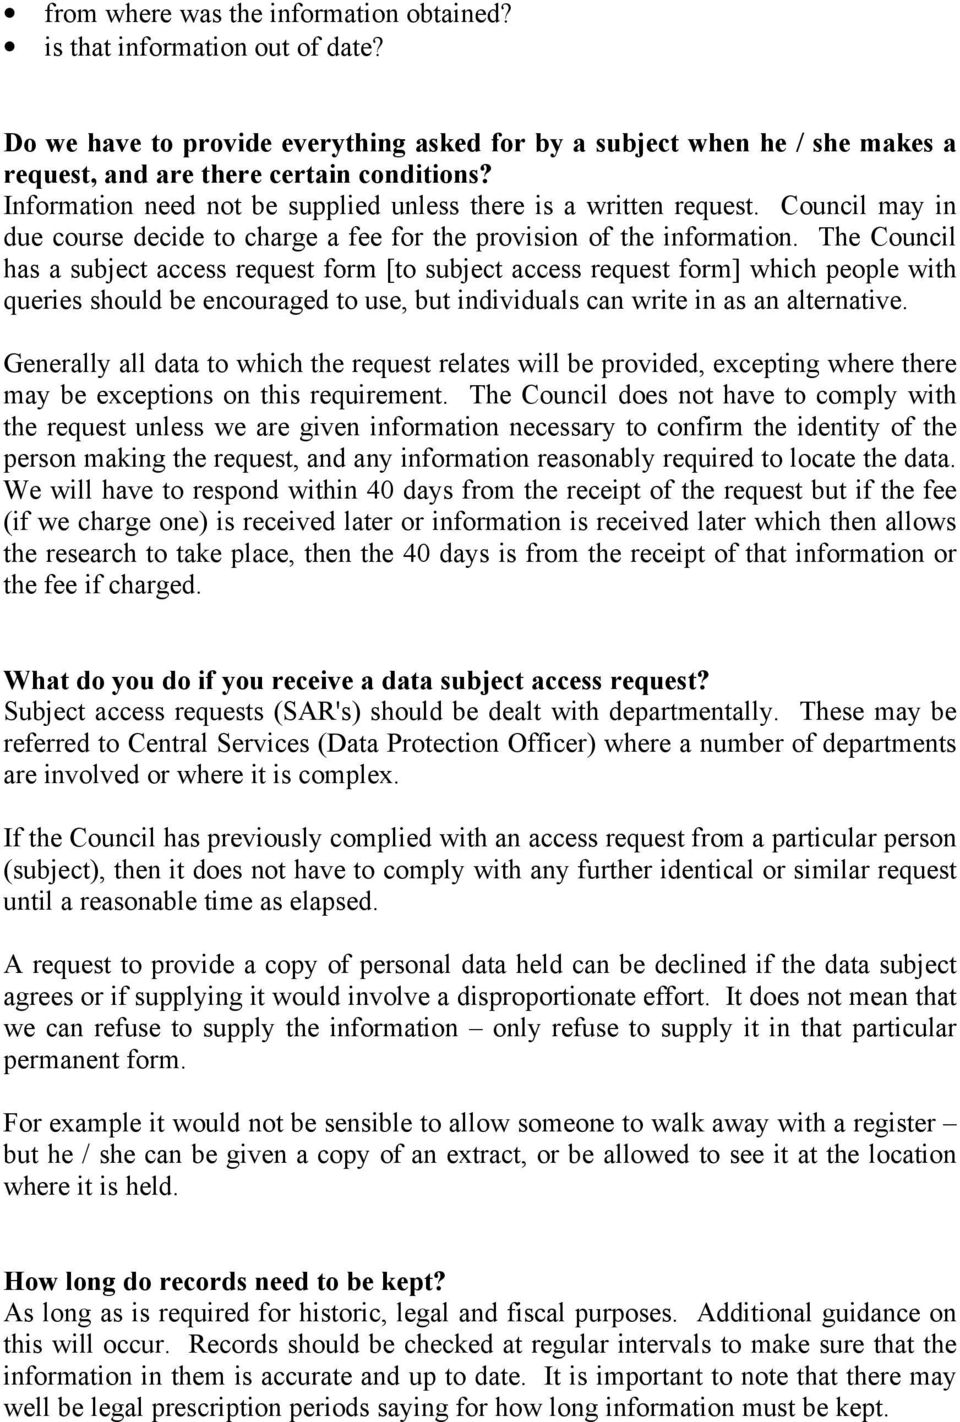 The Council has a subject access request form [to subject access request form] which people with queries should be encouraged to use, but individuals can write in as an alternative.